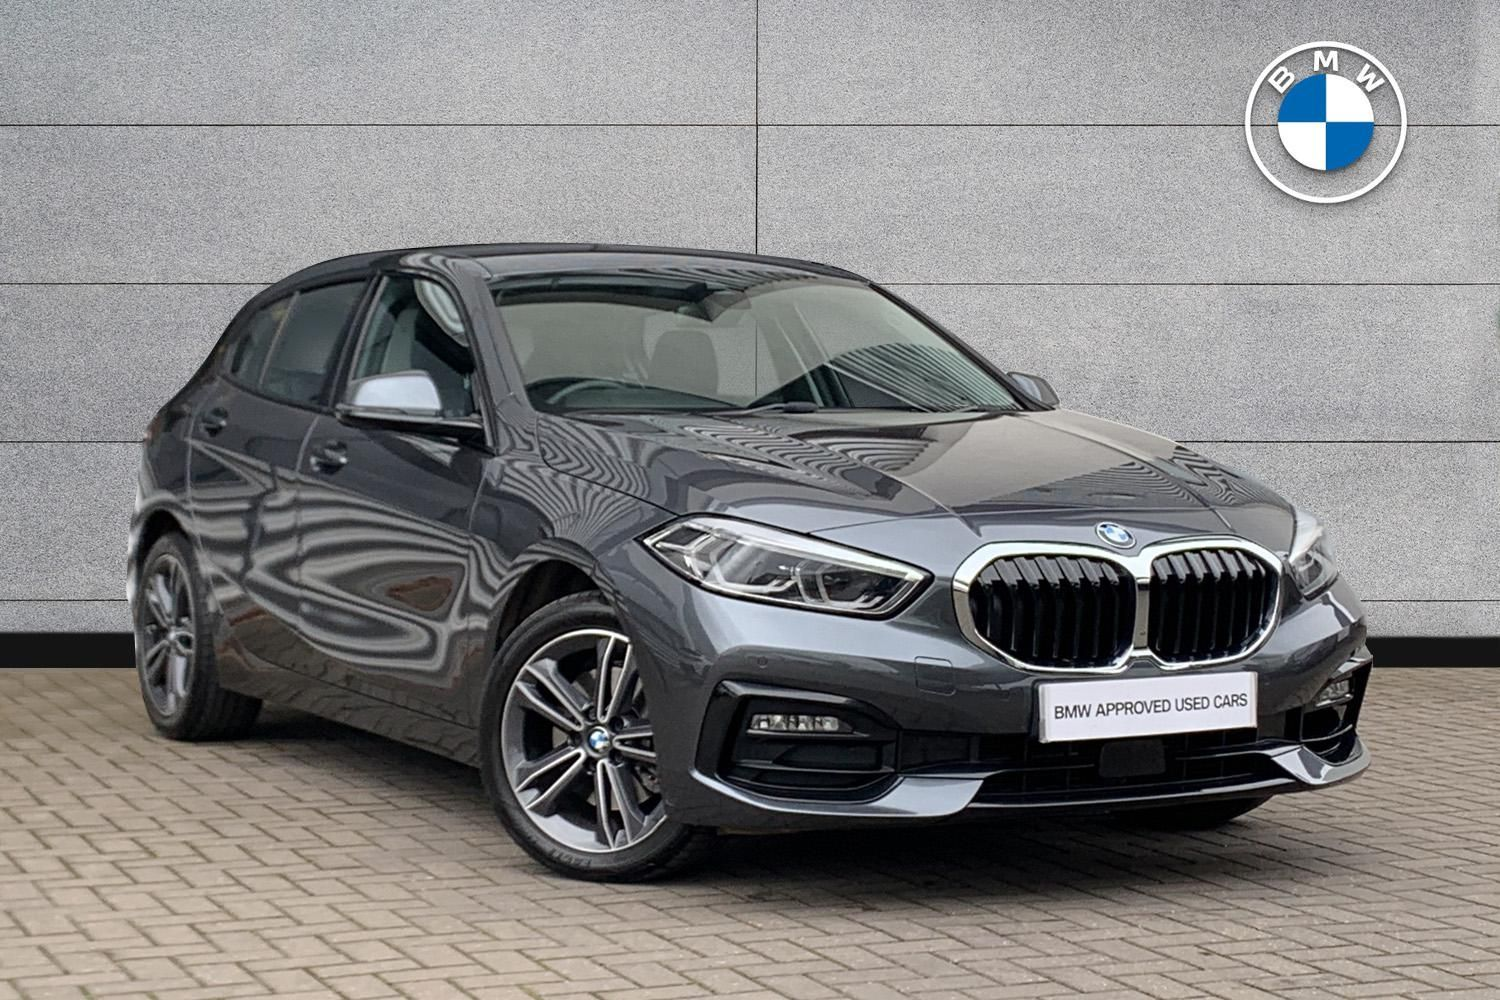 Bmw 1 Series Grey 5dr 2020 For Sale In Wolverhampton Rybrook